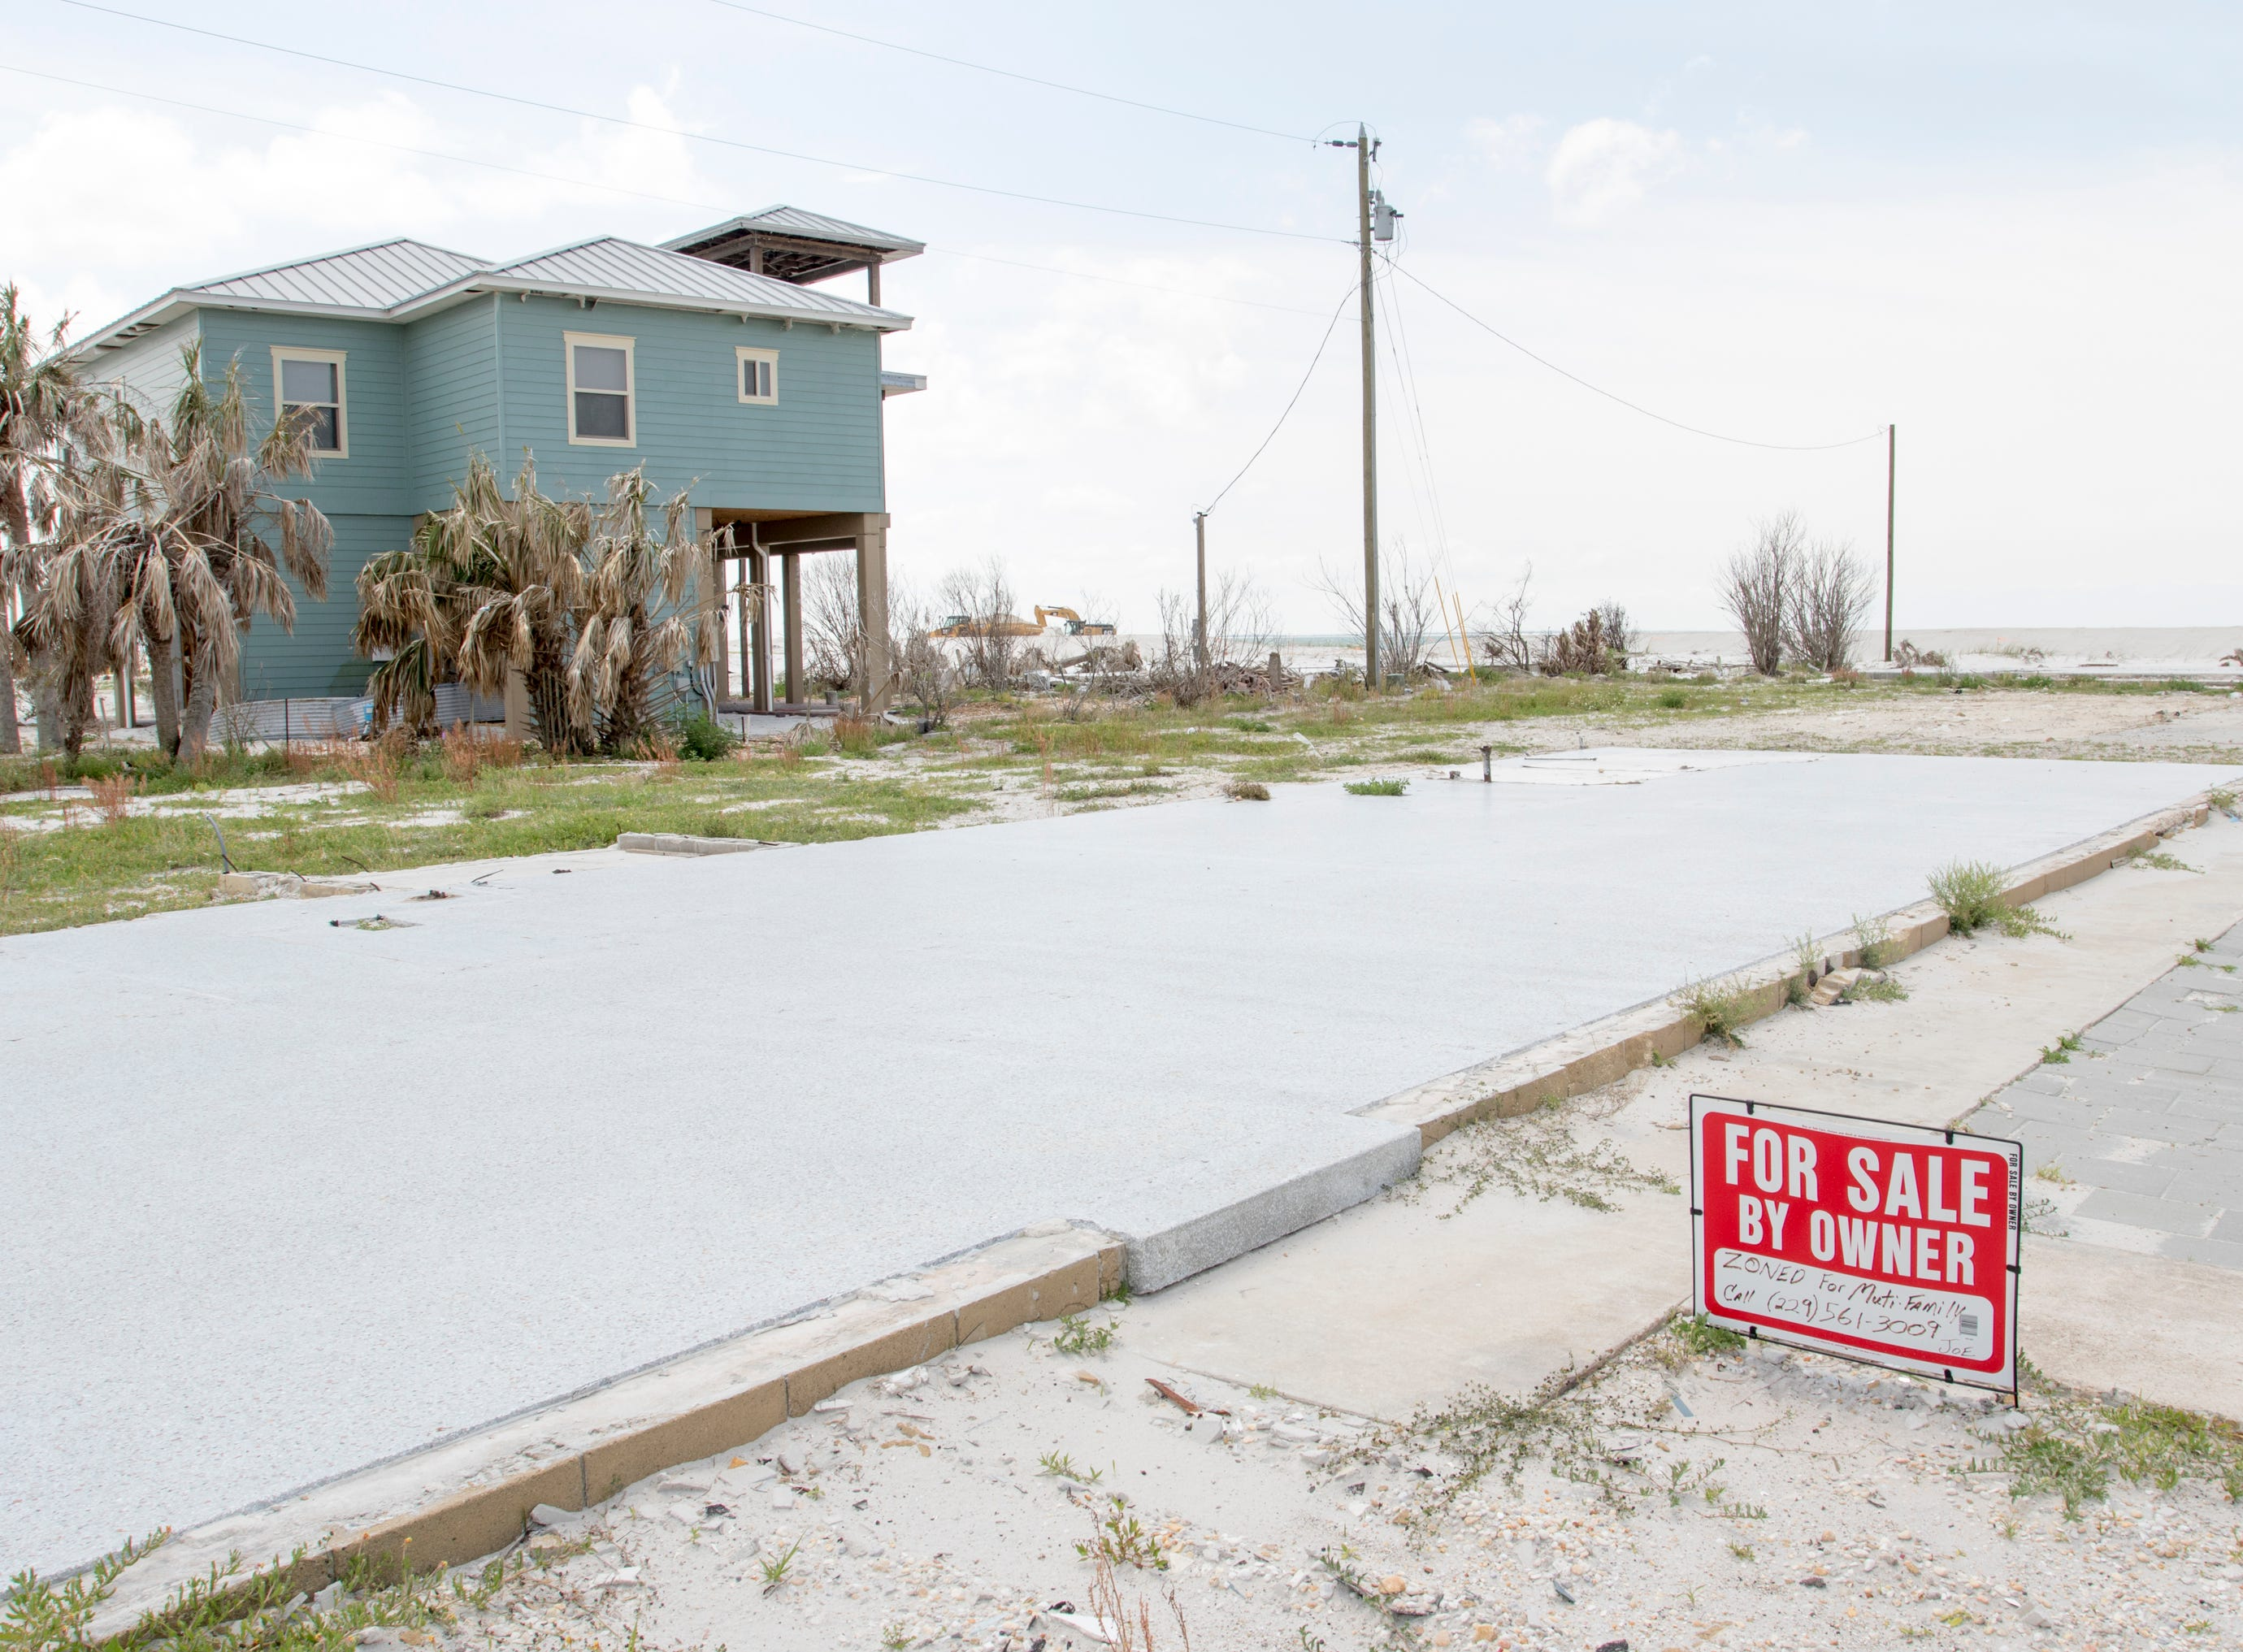 Nothing but foundations are left in many cases after Hurricane Michael in Mexico Beach, Florida on Wednesday, May 8, 2019.  Michael made landfall as a Category 5 hurricane between Mexico Beach and Tyndall Air Force Base on October 10, 2018.